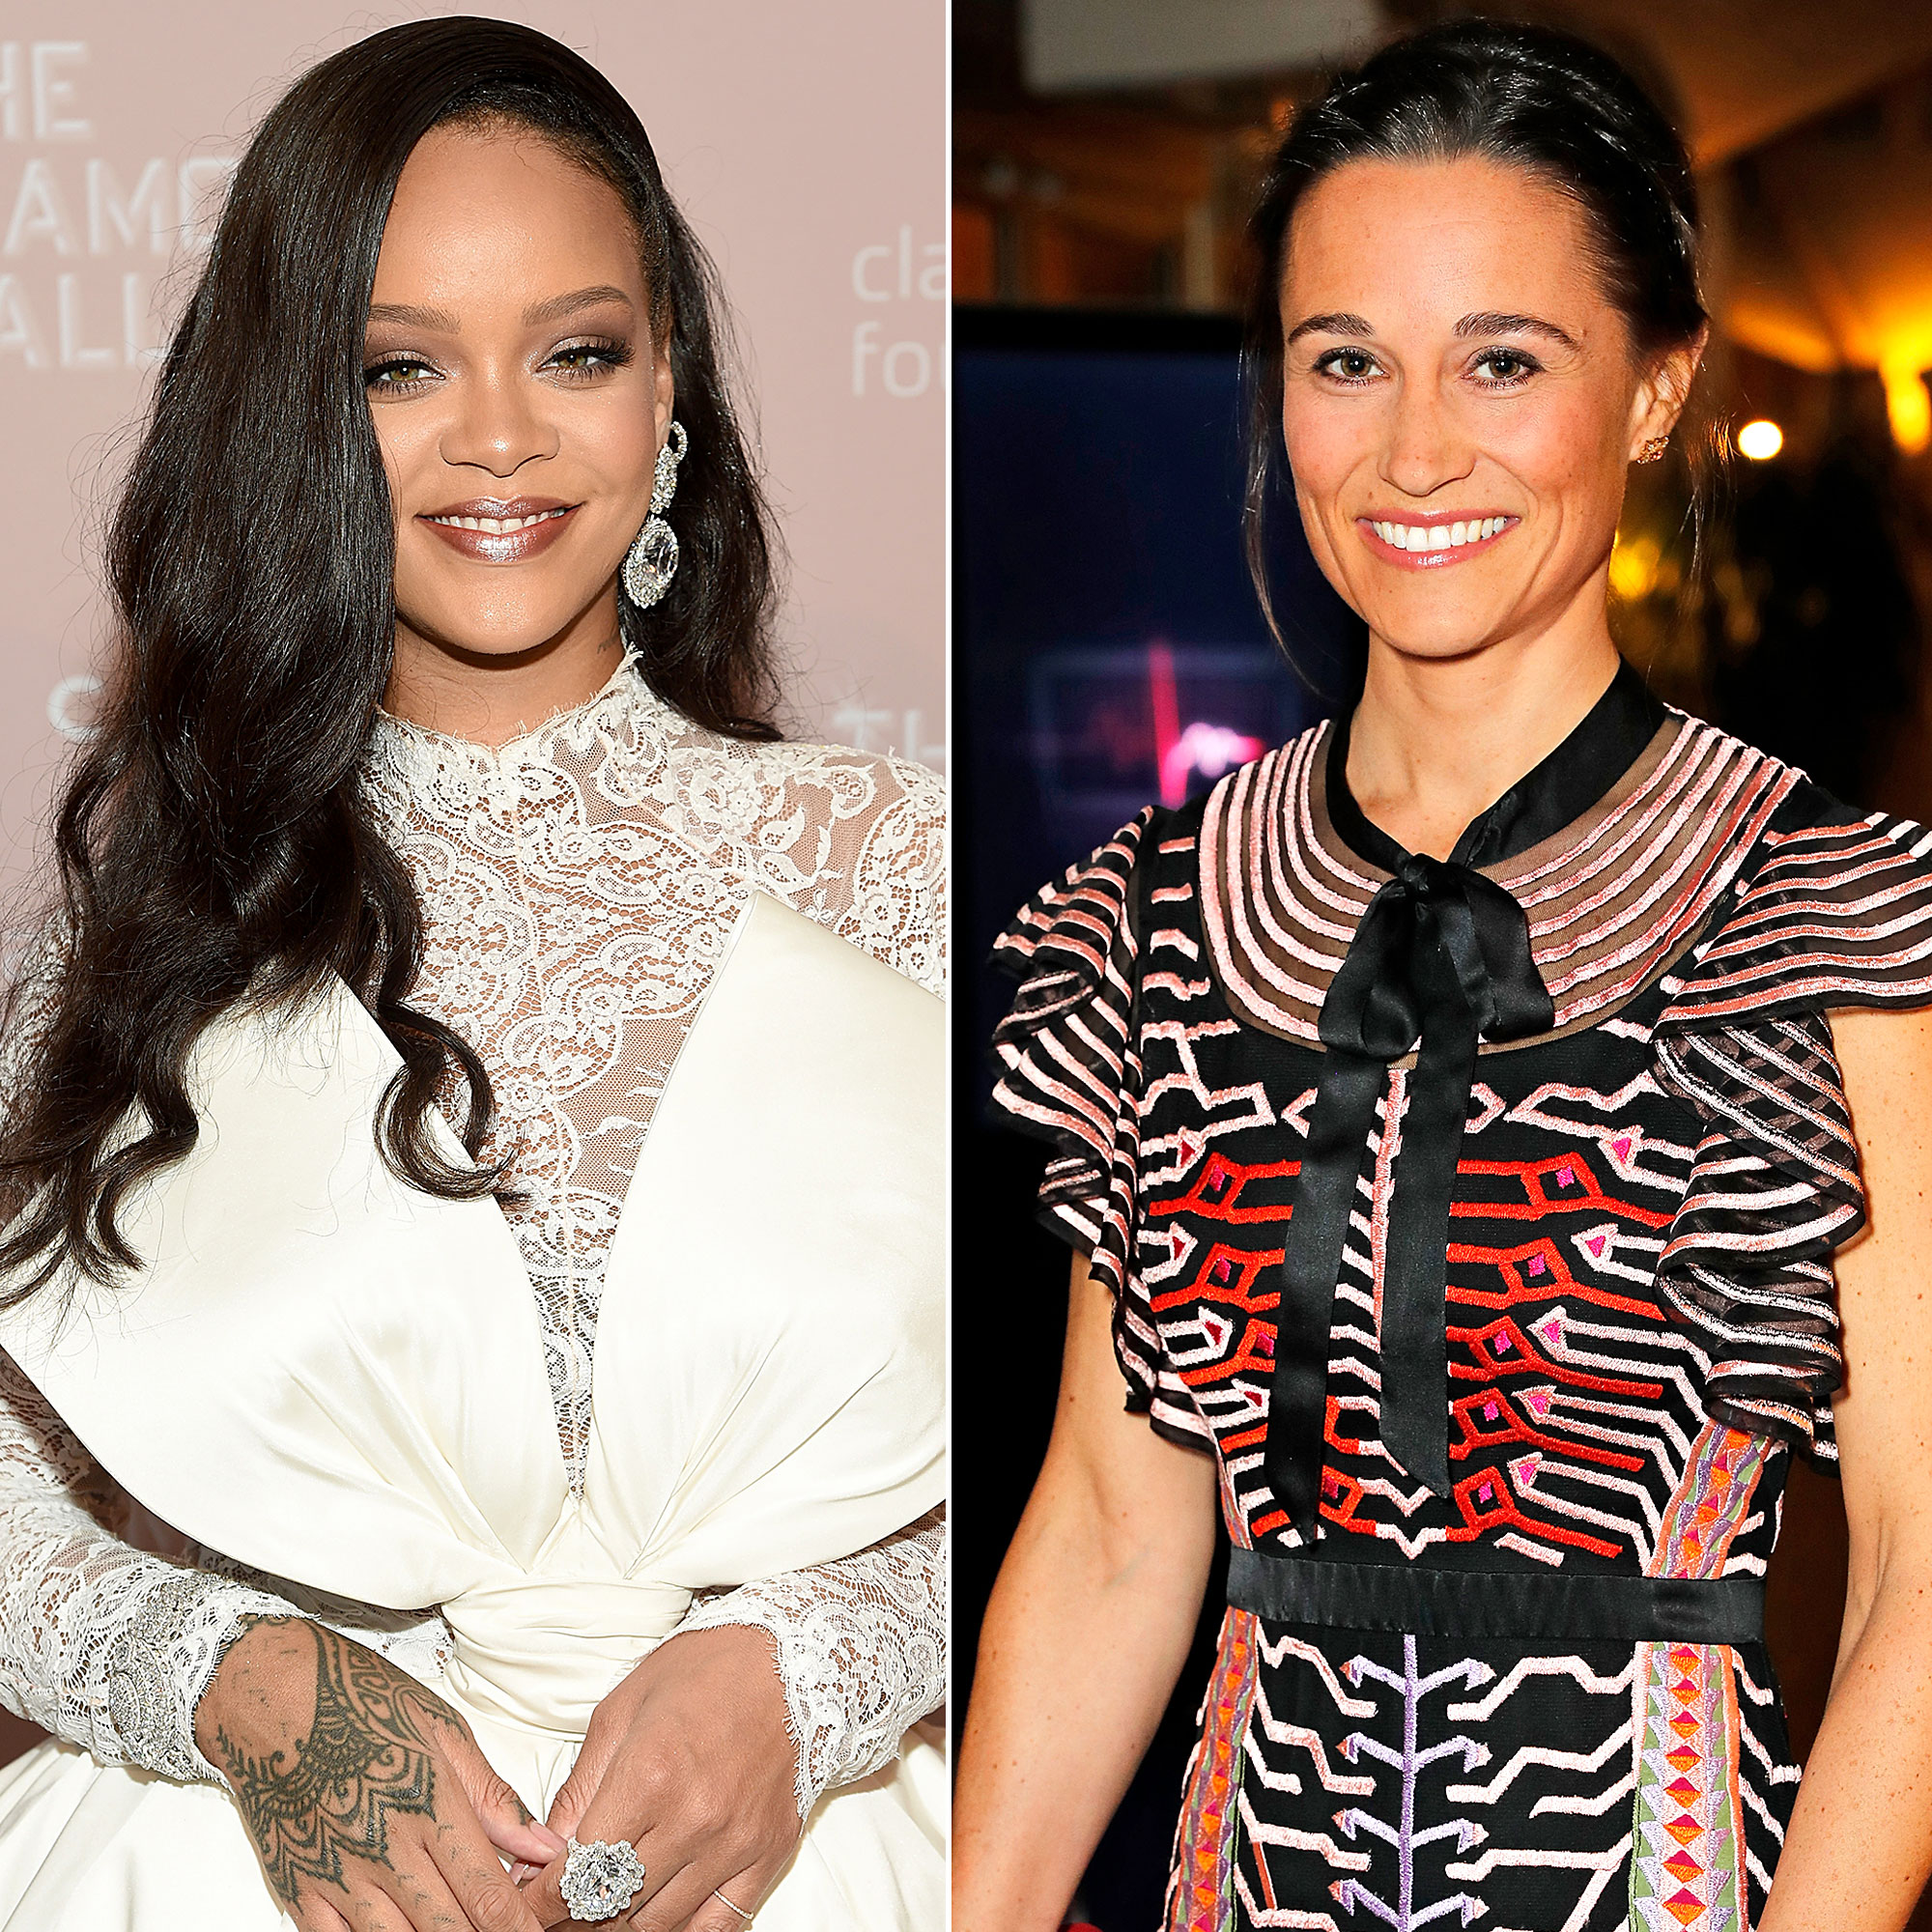 Celebs Who Have Looked Like Food - Rihanna and Pippa Middleton.